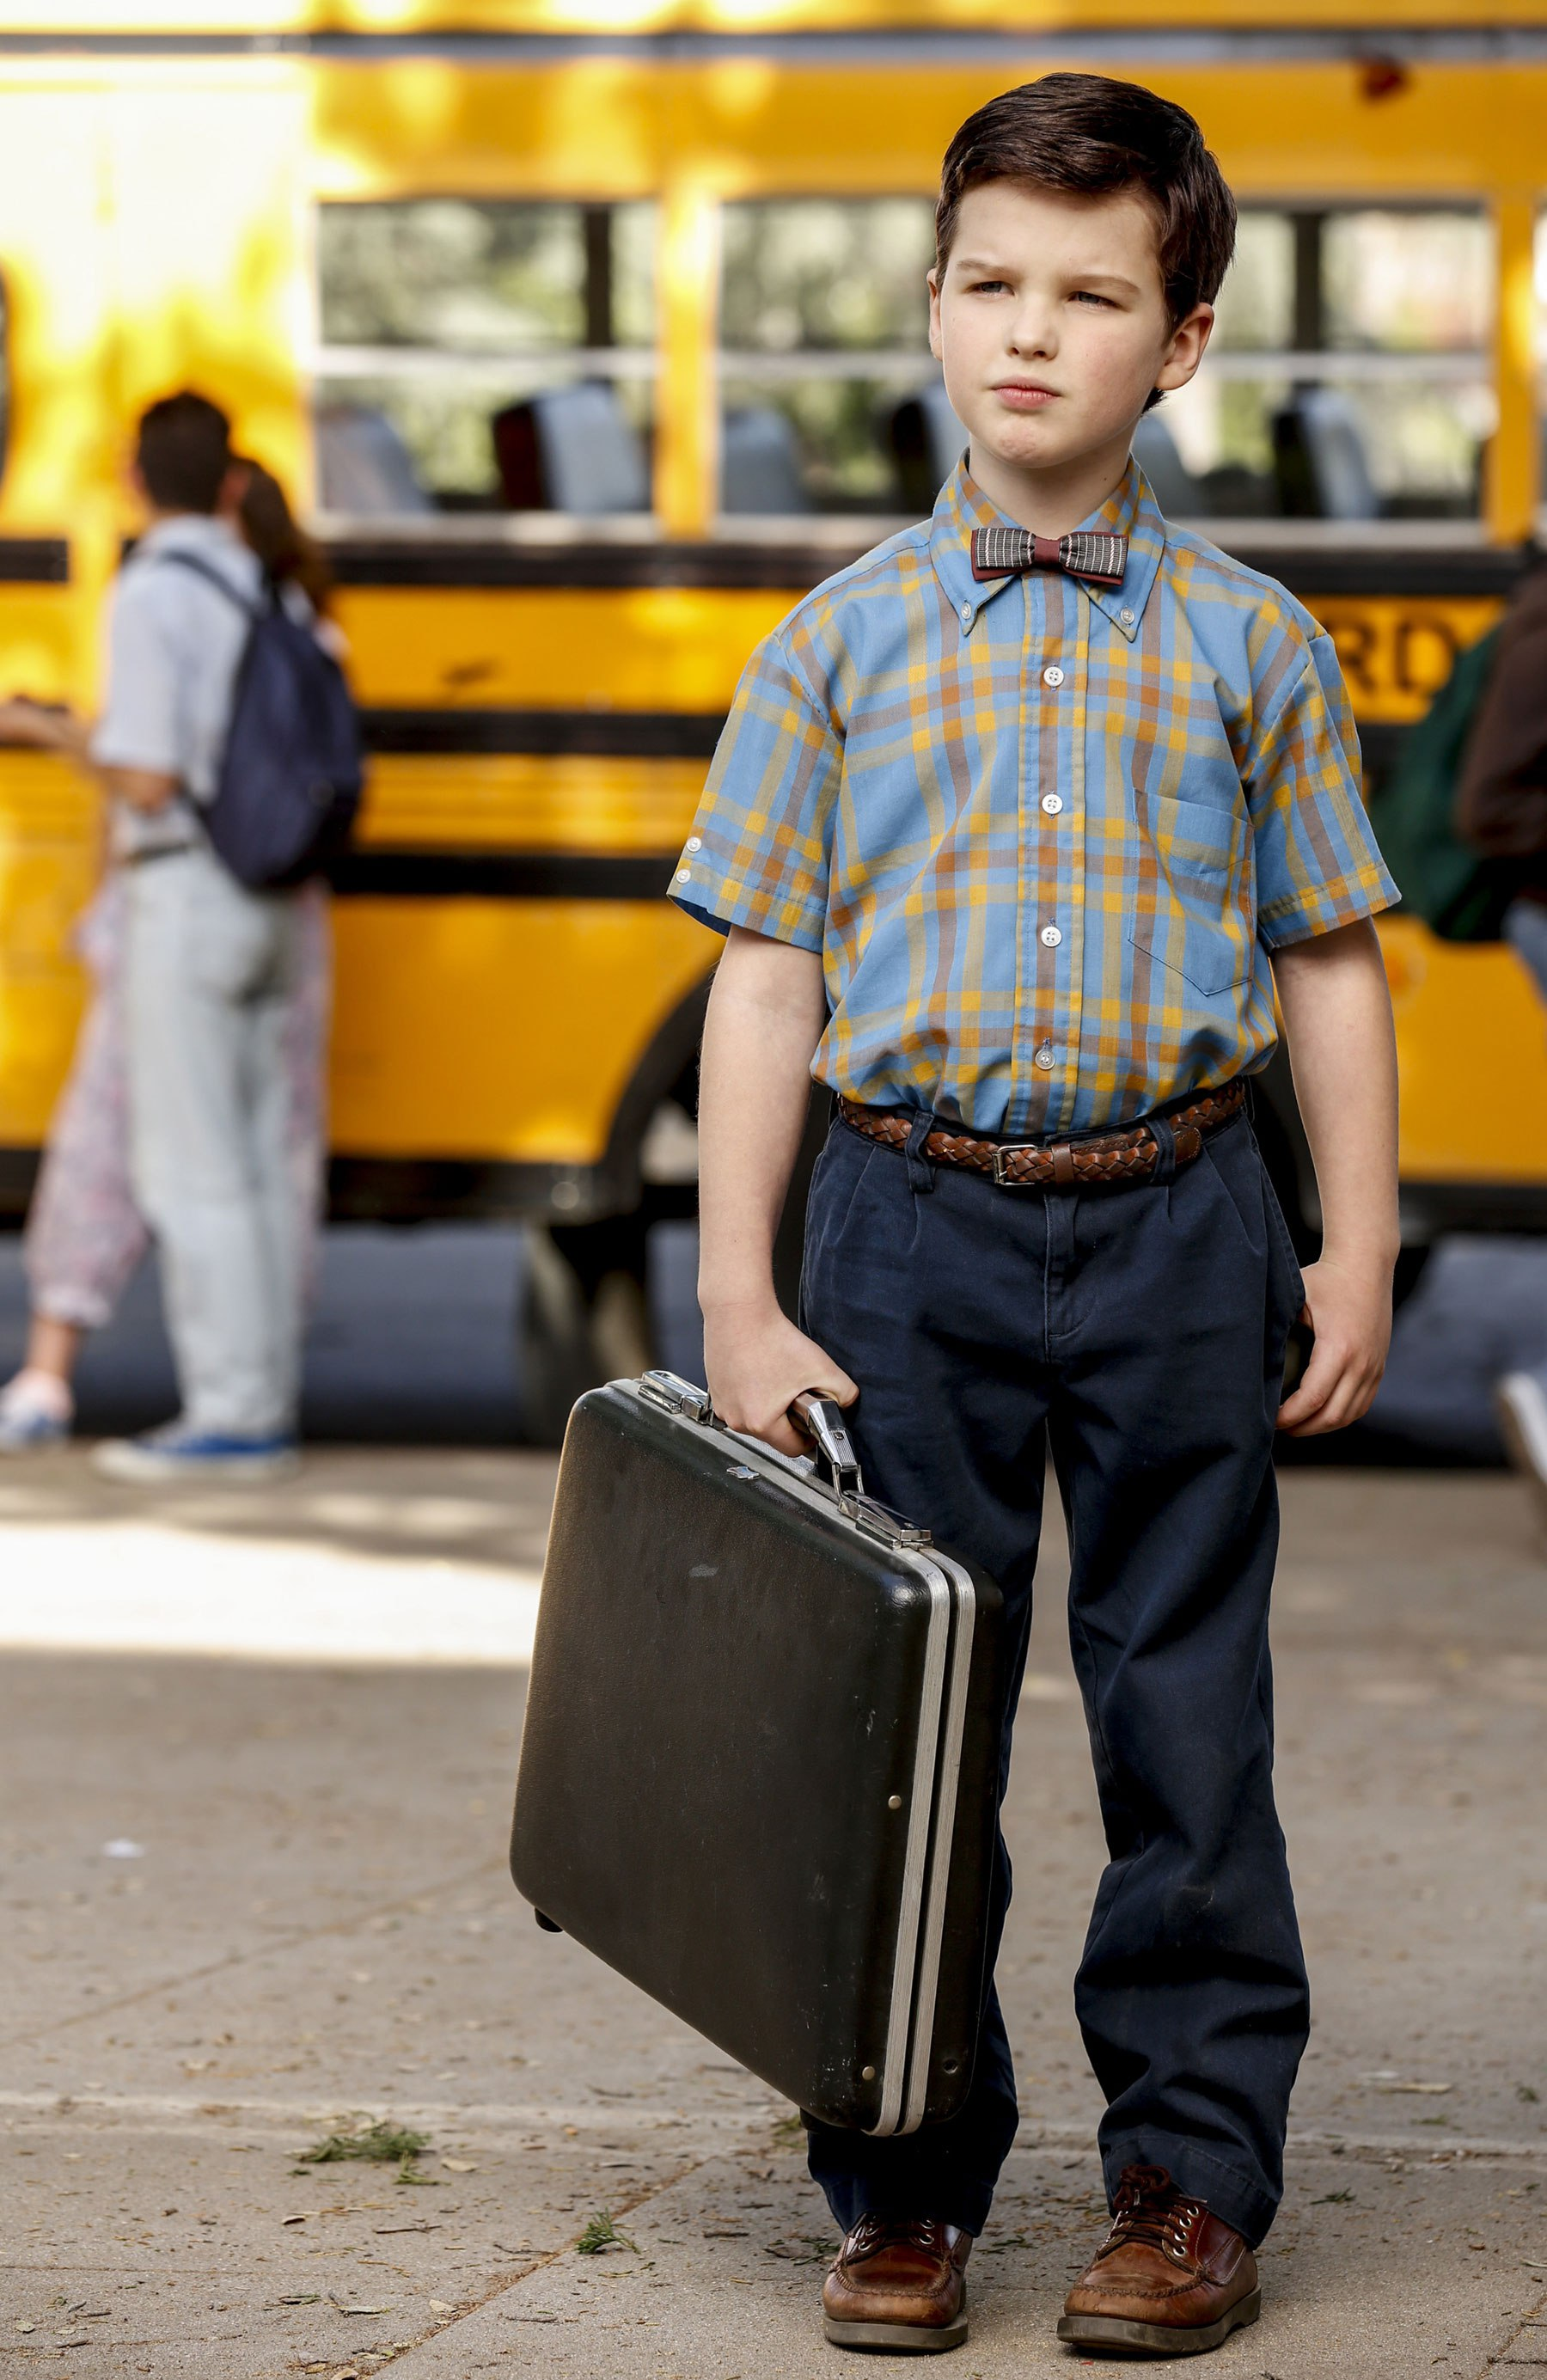 "YOUNG SHELDON is a new half-hour, single-camera comedy created by Chuck Lorre and Steven Molaro, that introduces ""The Big Bang Theory's"" Sheldon Cooper (Iain Armitage), a 9-year-old genius living with his family in East Texas and going to high school. YOUNG SHELDON will have a special Monday launch behind the season premiere of THE BIG BANG THEORY on Sept. 25 (8:30-9:00 PM, ET/PT). On Nov. 2, YOUNG SHELDON will move to its regular time period, Thursdays (8:30-9:00 PM, ET/PT) on the CBS Television Network. Photo: Robert Voets/CBS ©2017 CBS Broadcasting, Inc. All Rights Reserved."